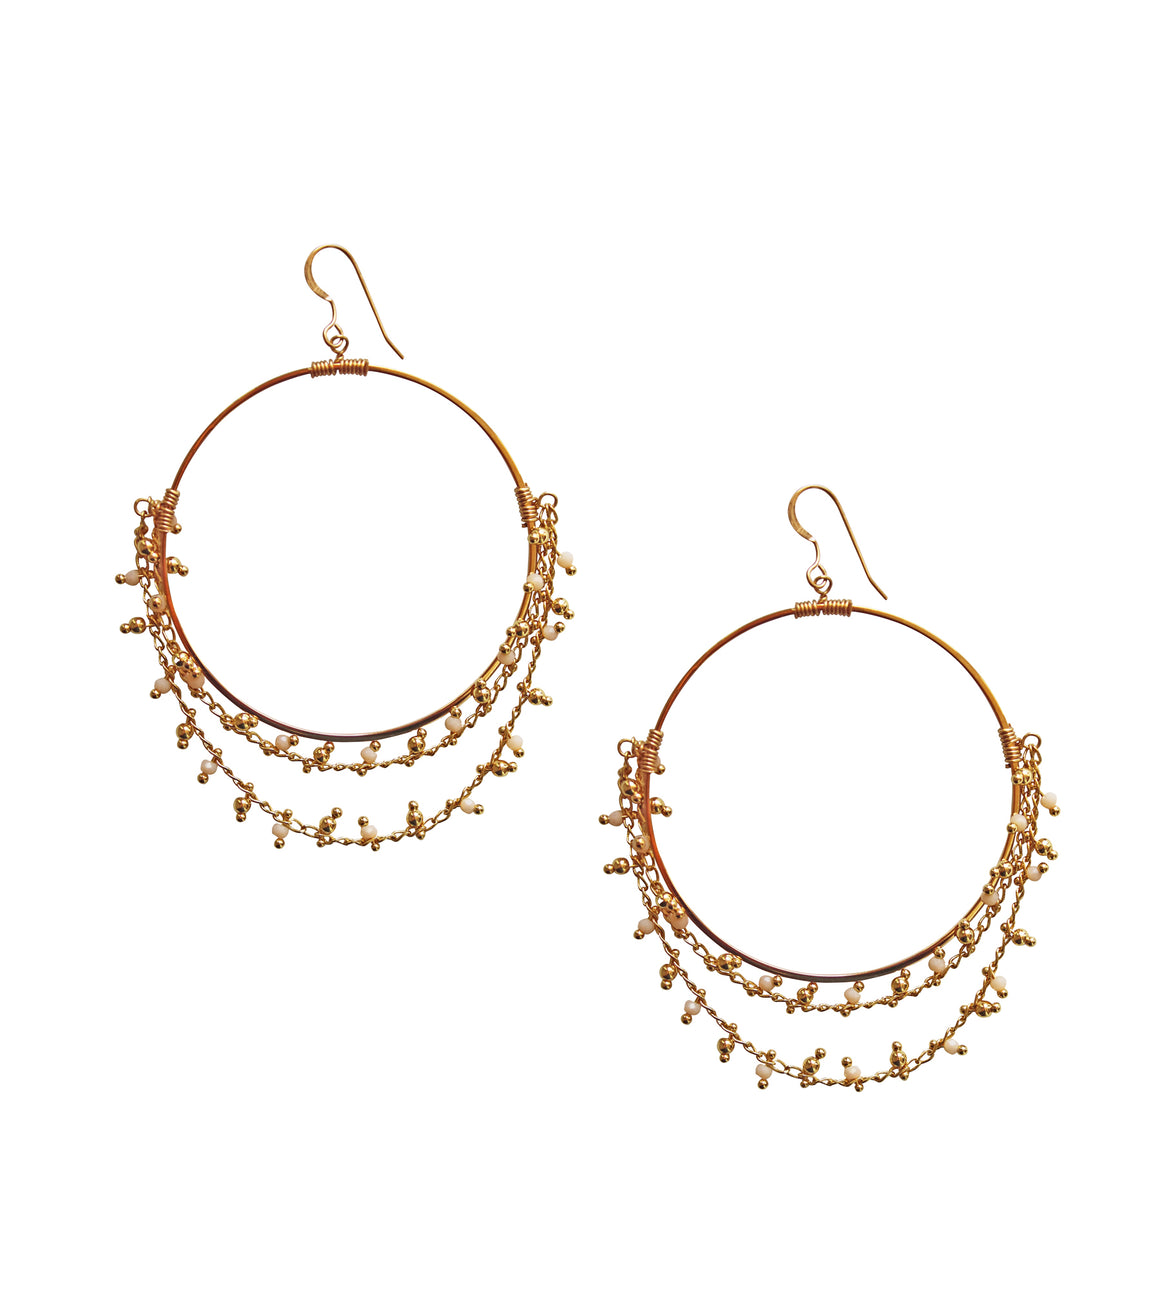 Whitley earrings